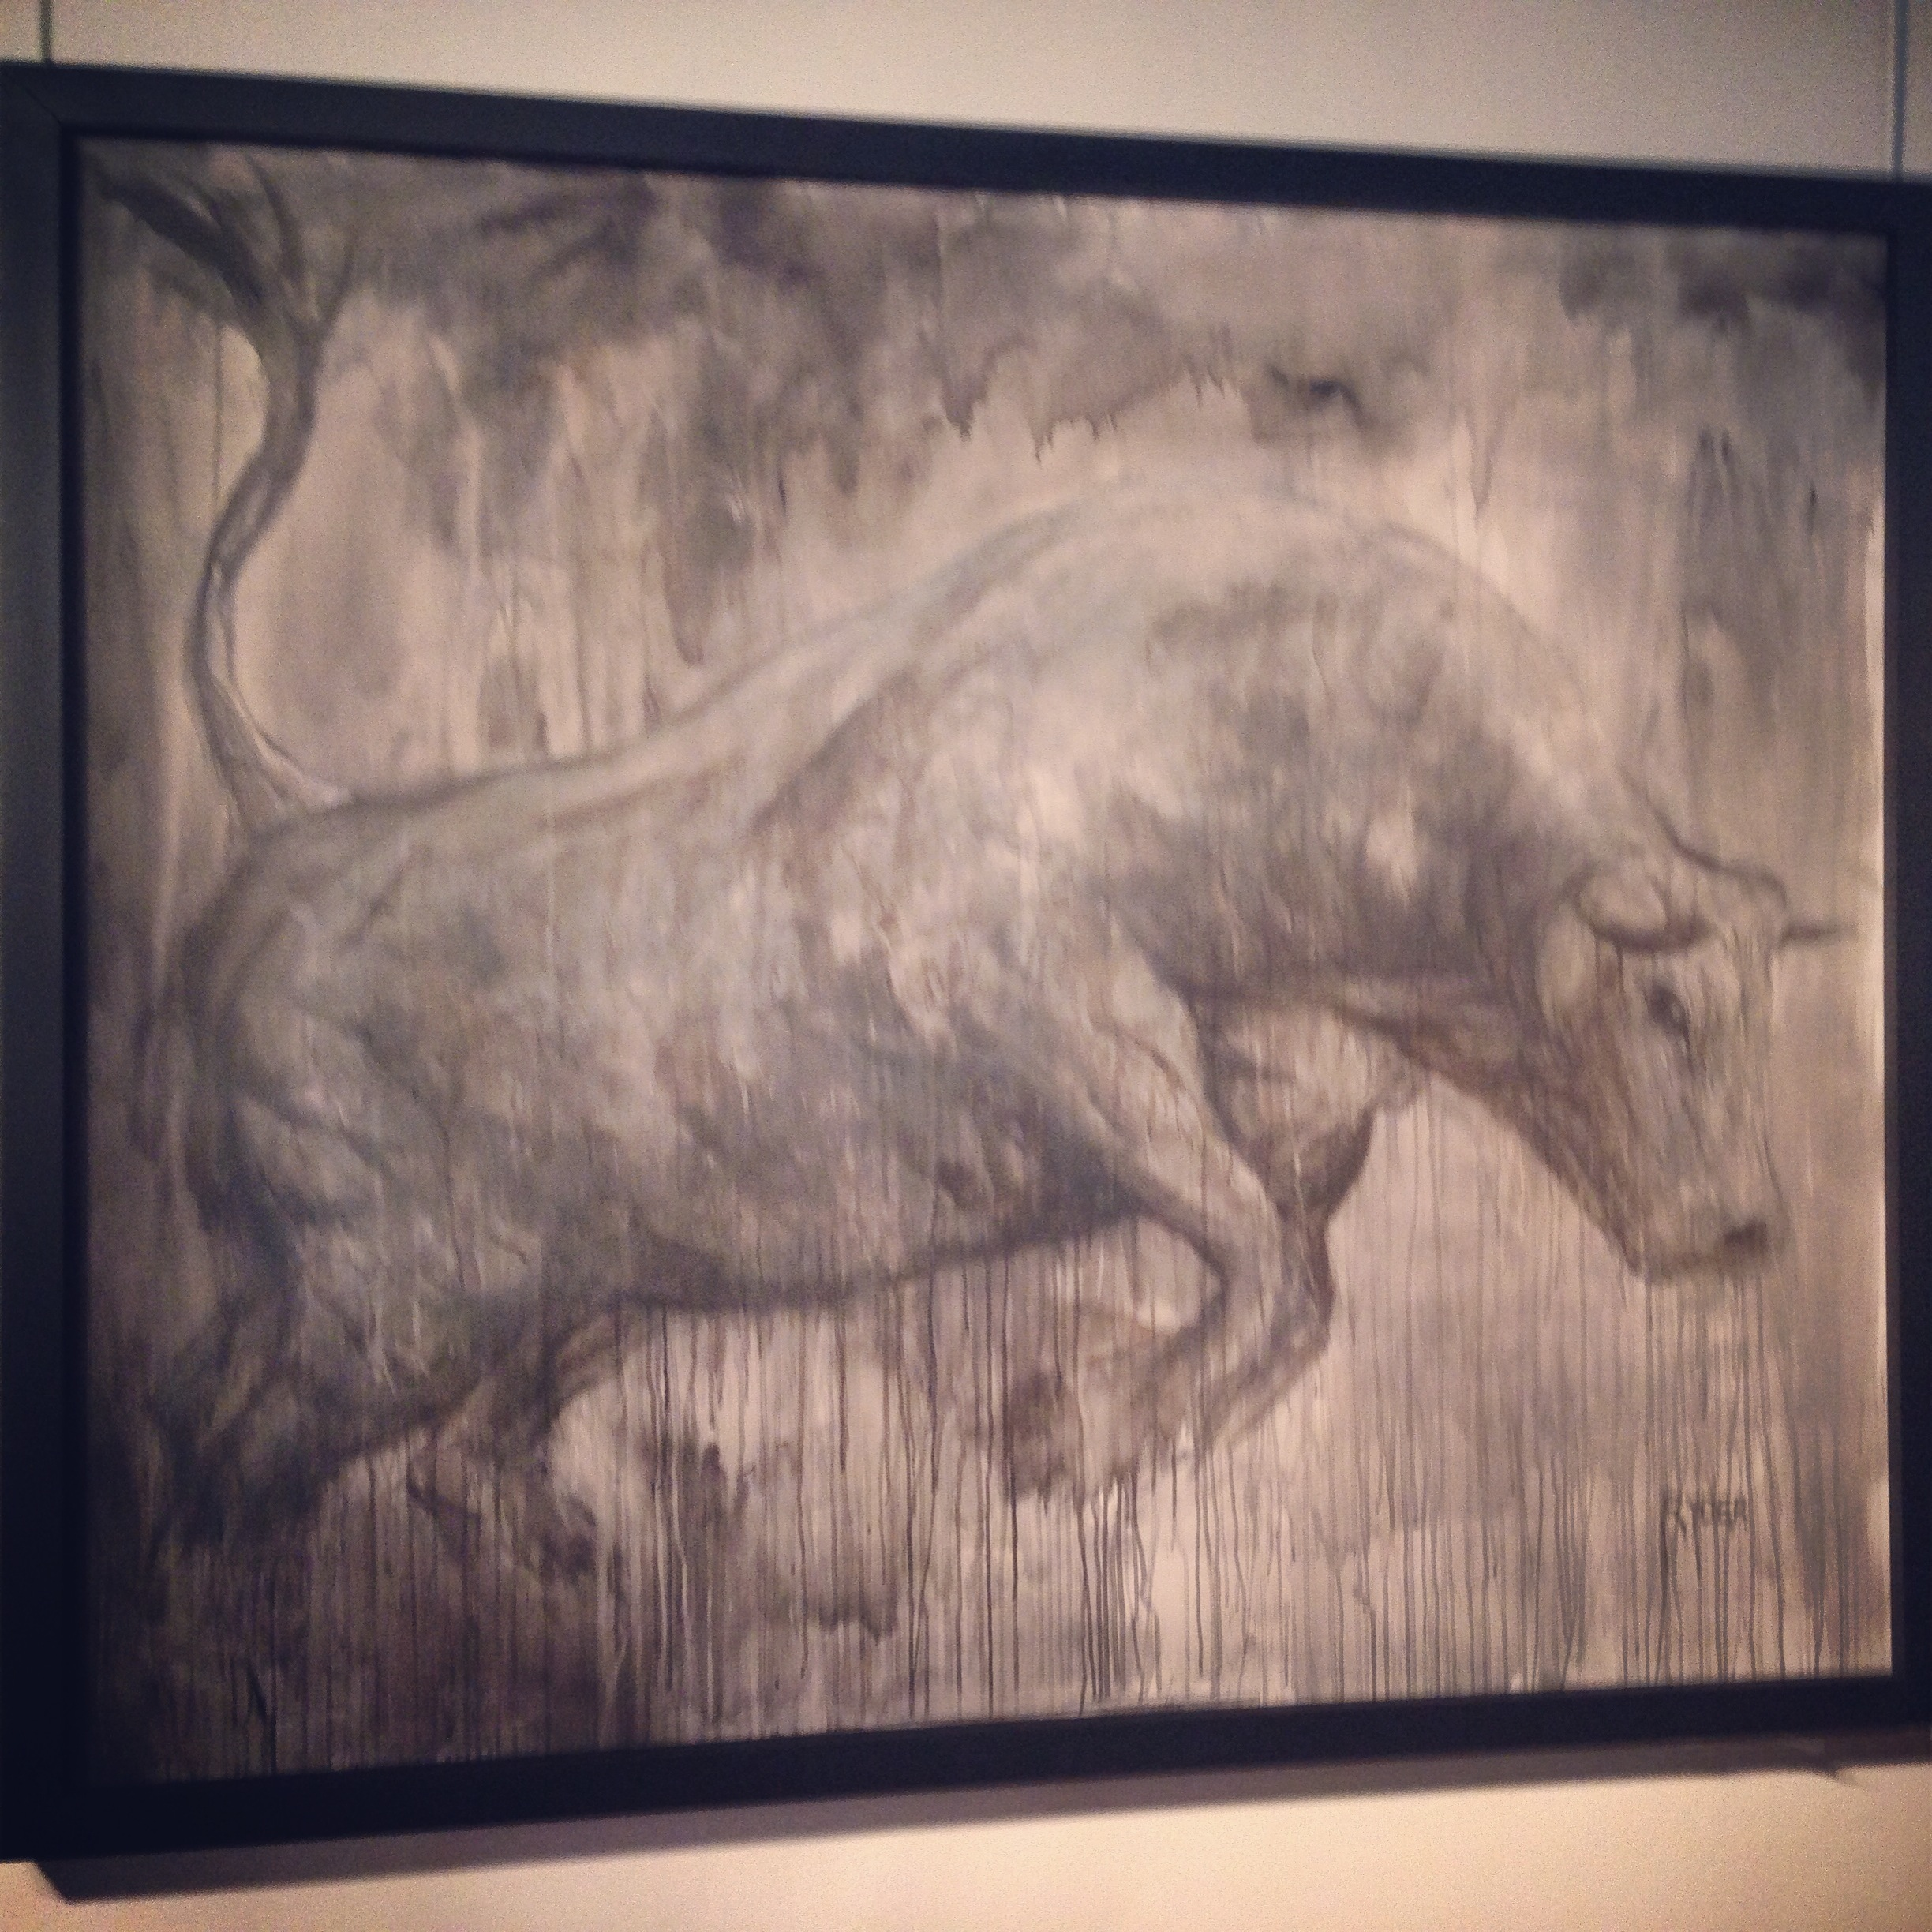 Matthew Ryder's raging bull almost seems to be trying to leap from the walls at Pro Art